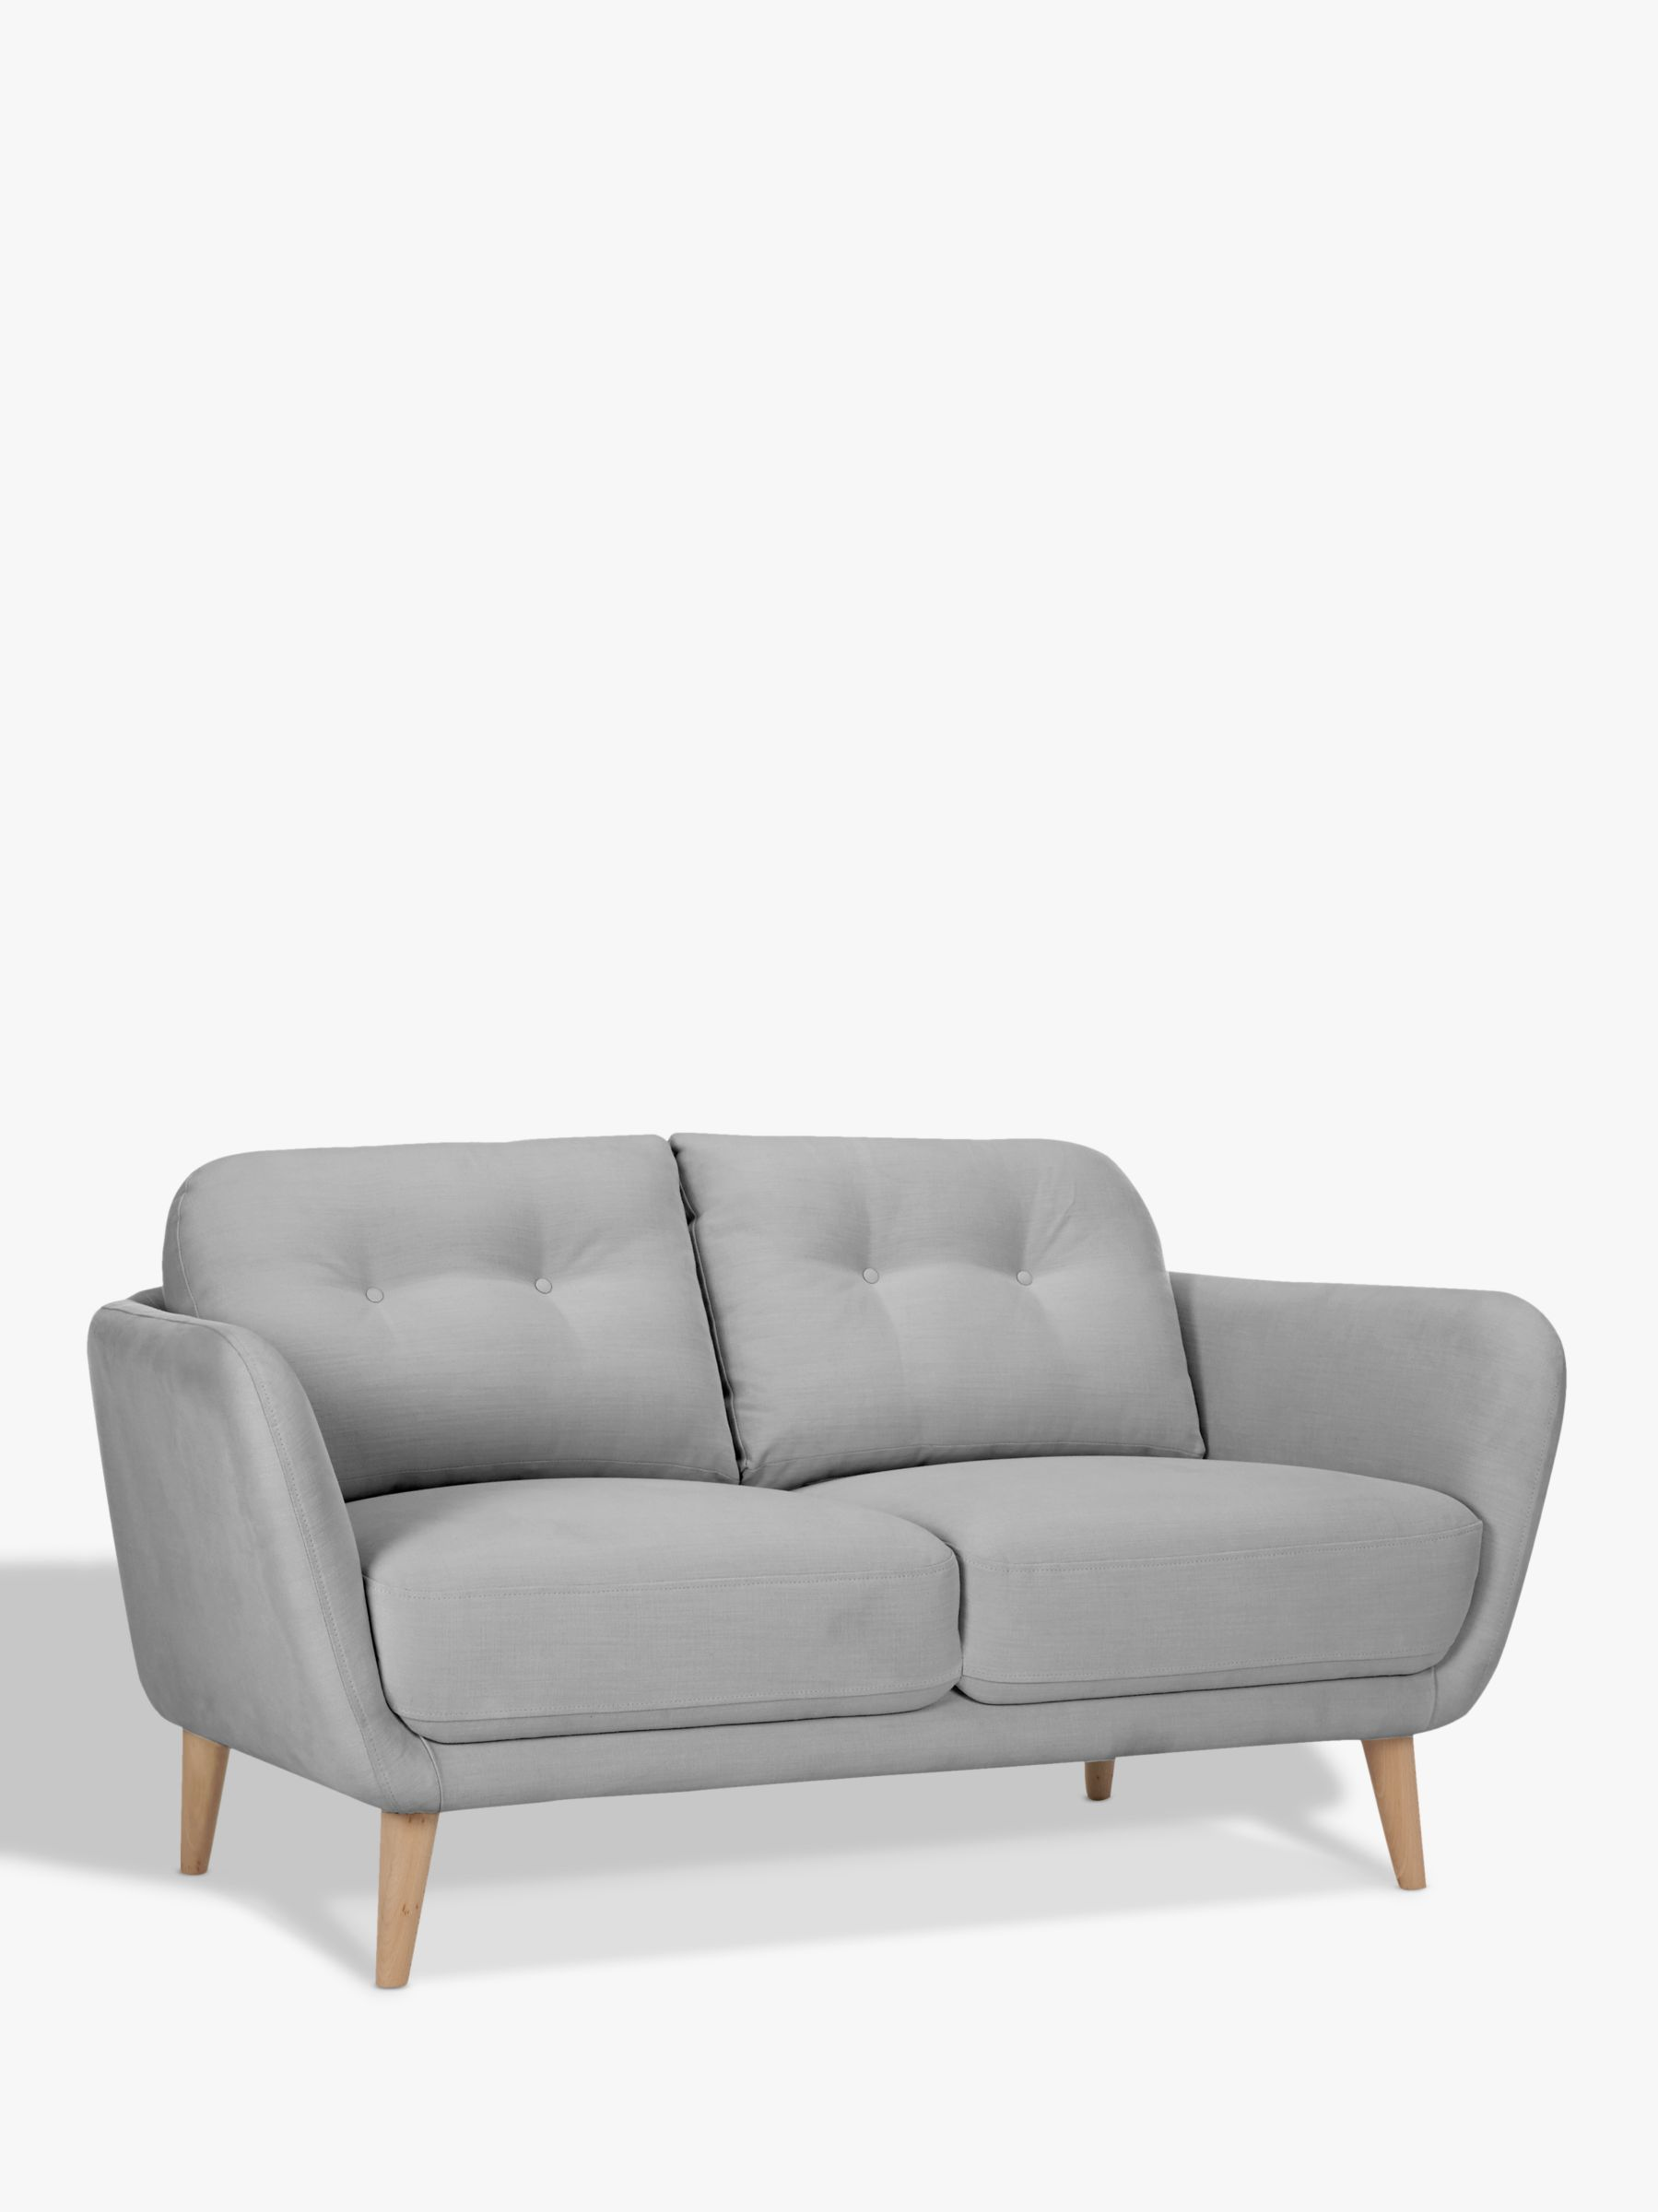 sofas for small es ottoman sofa bed double house by john lewis arlo 2 seater light leg at buyhouse online johnlewis